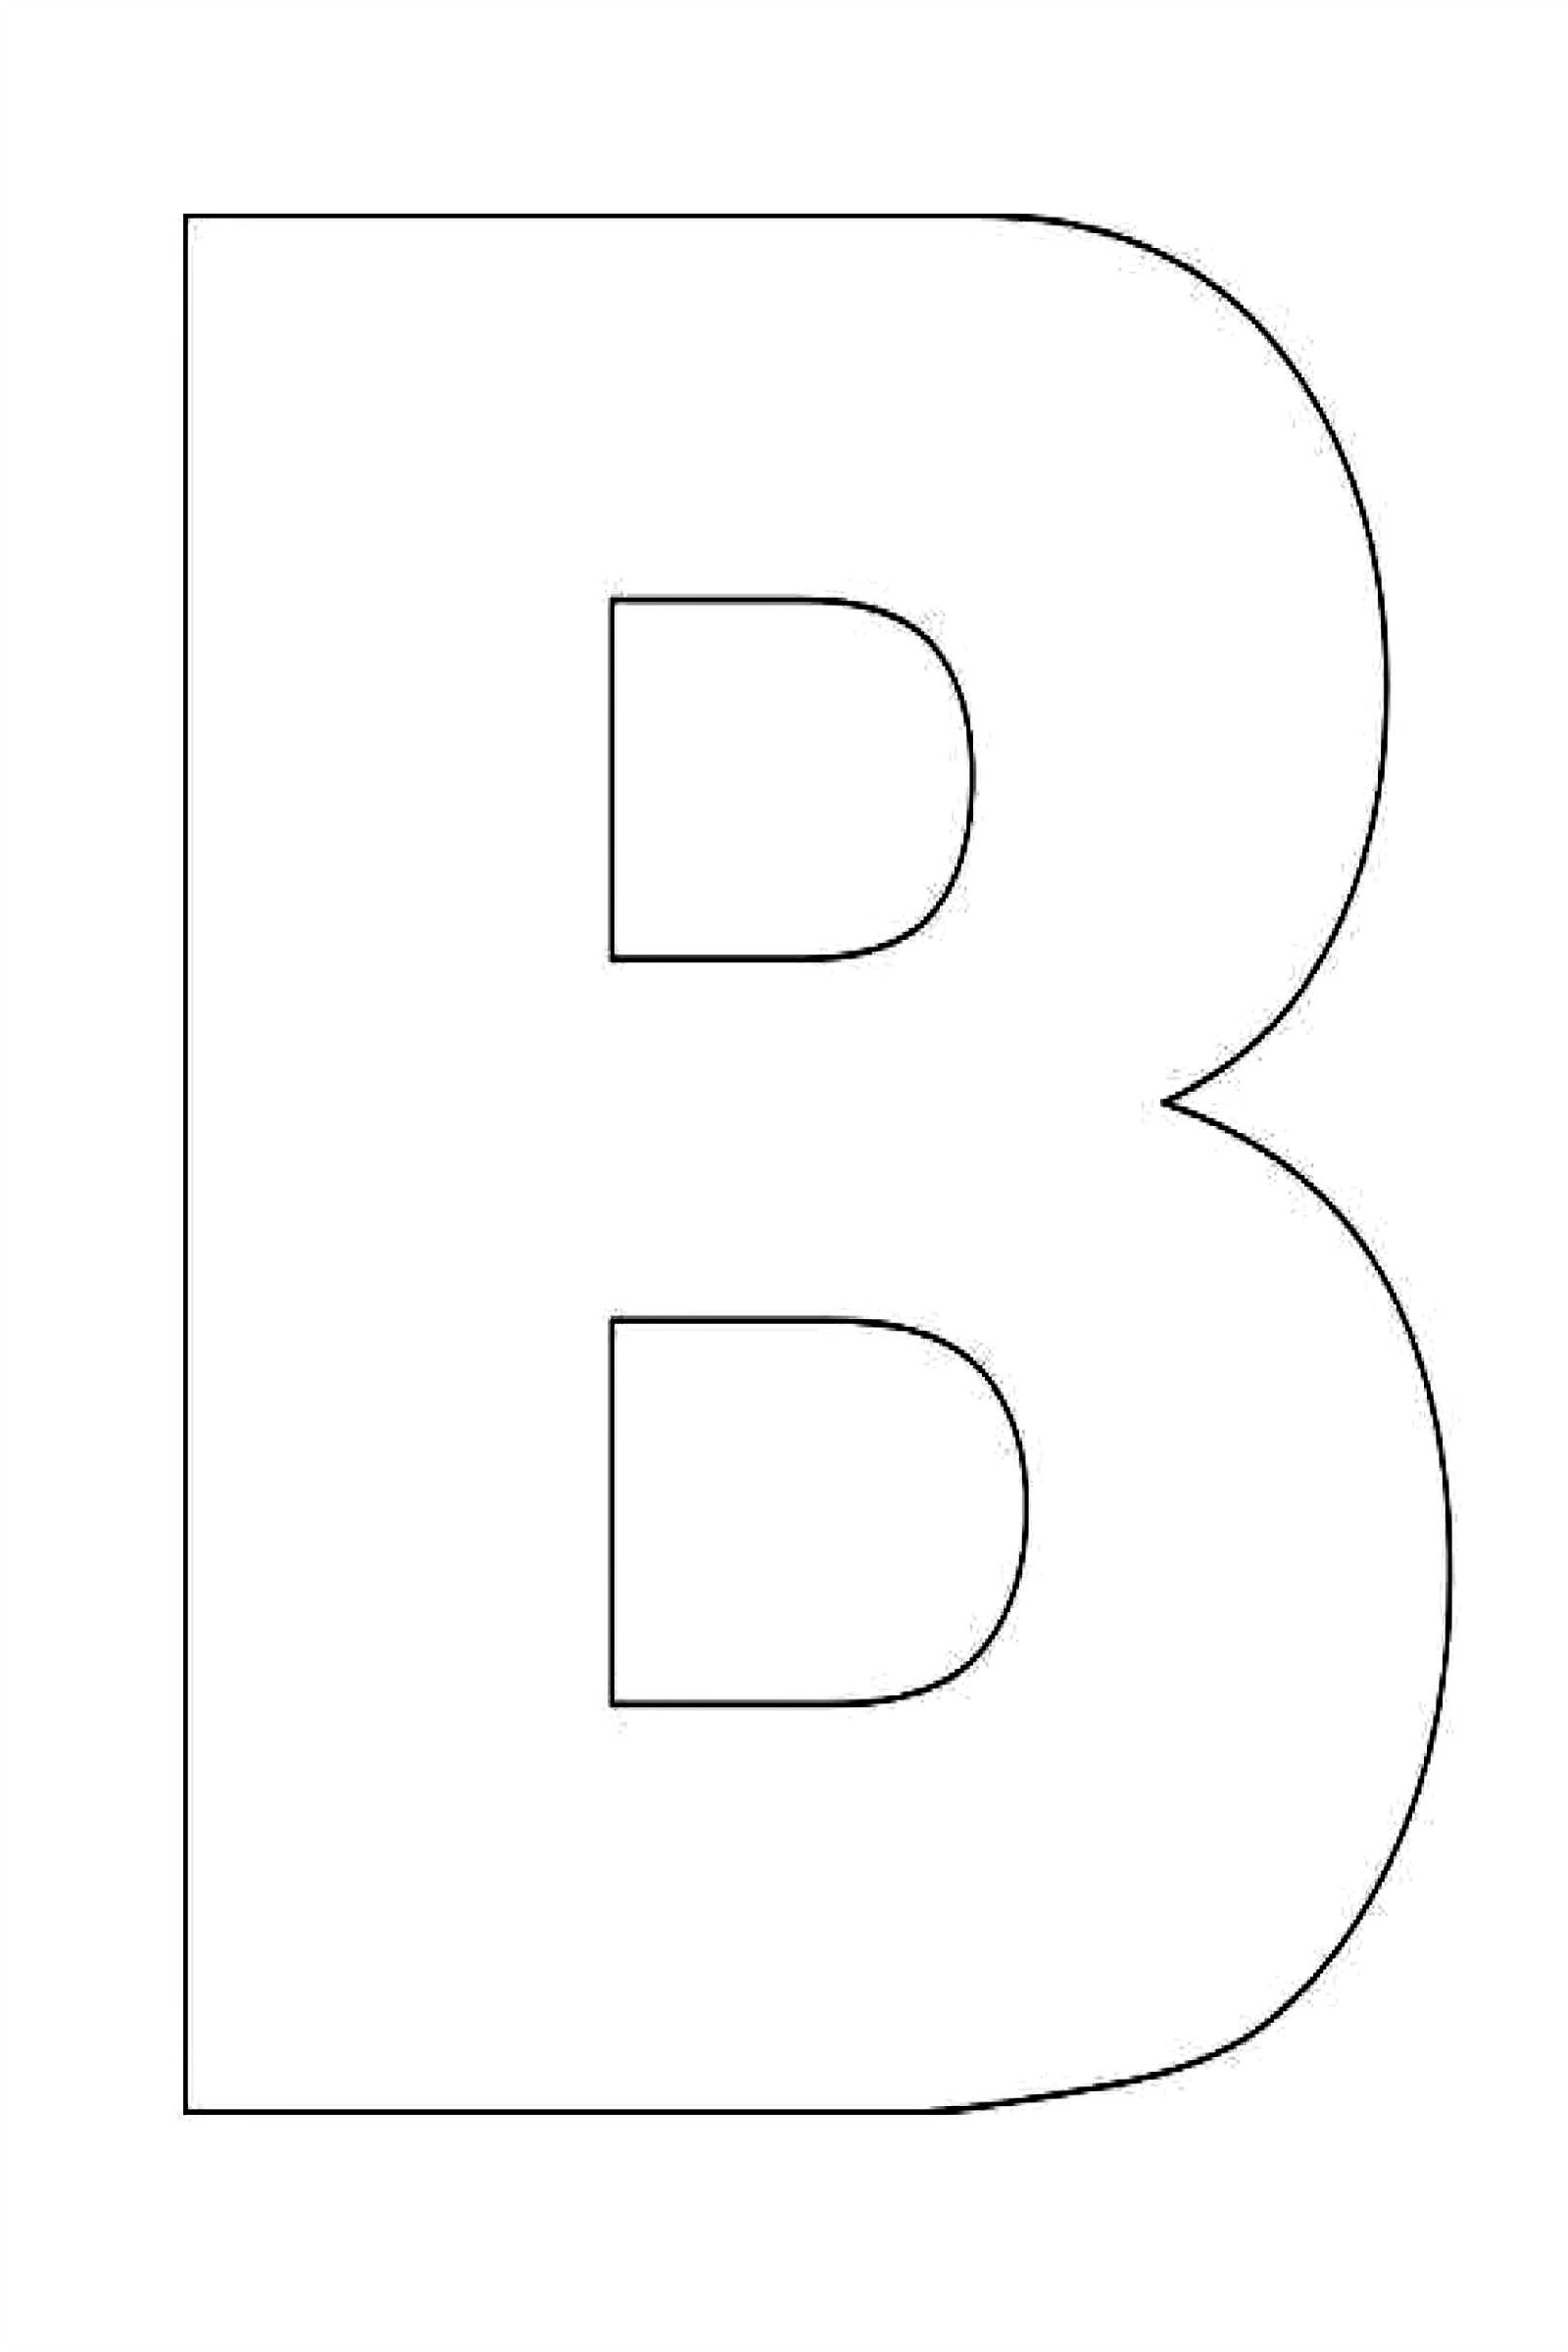 Alphabet letter b template for kids 000 teaching 23 class alphabet letter b template for kids spiritdancerdesigns Choice Image